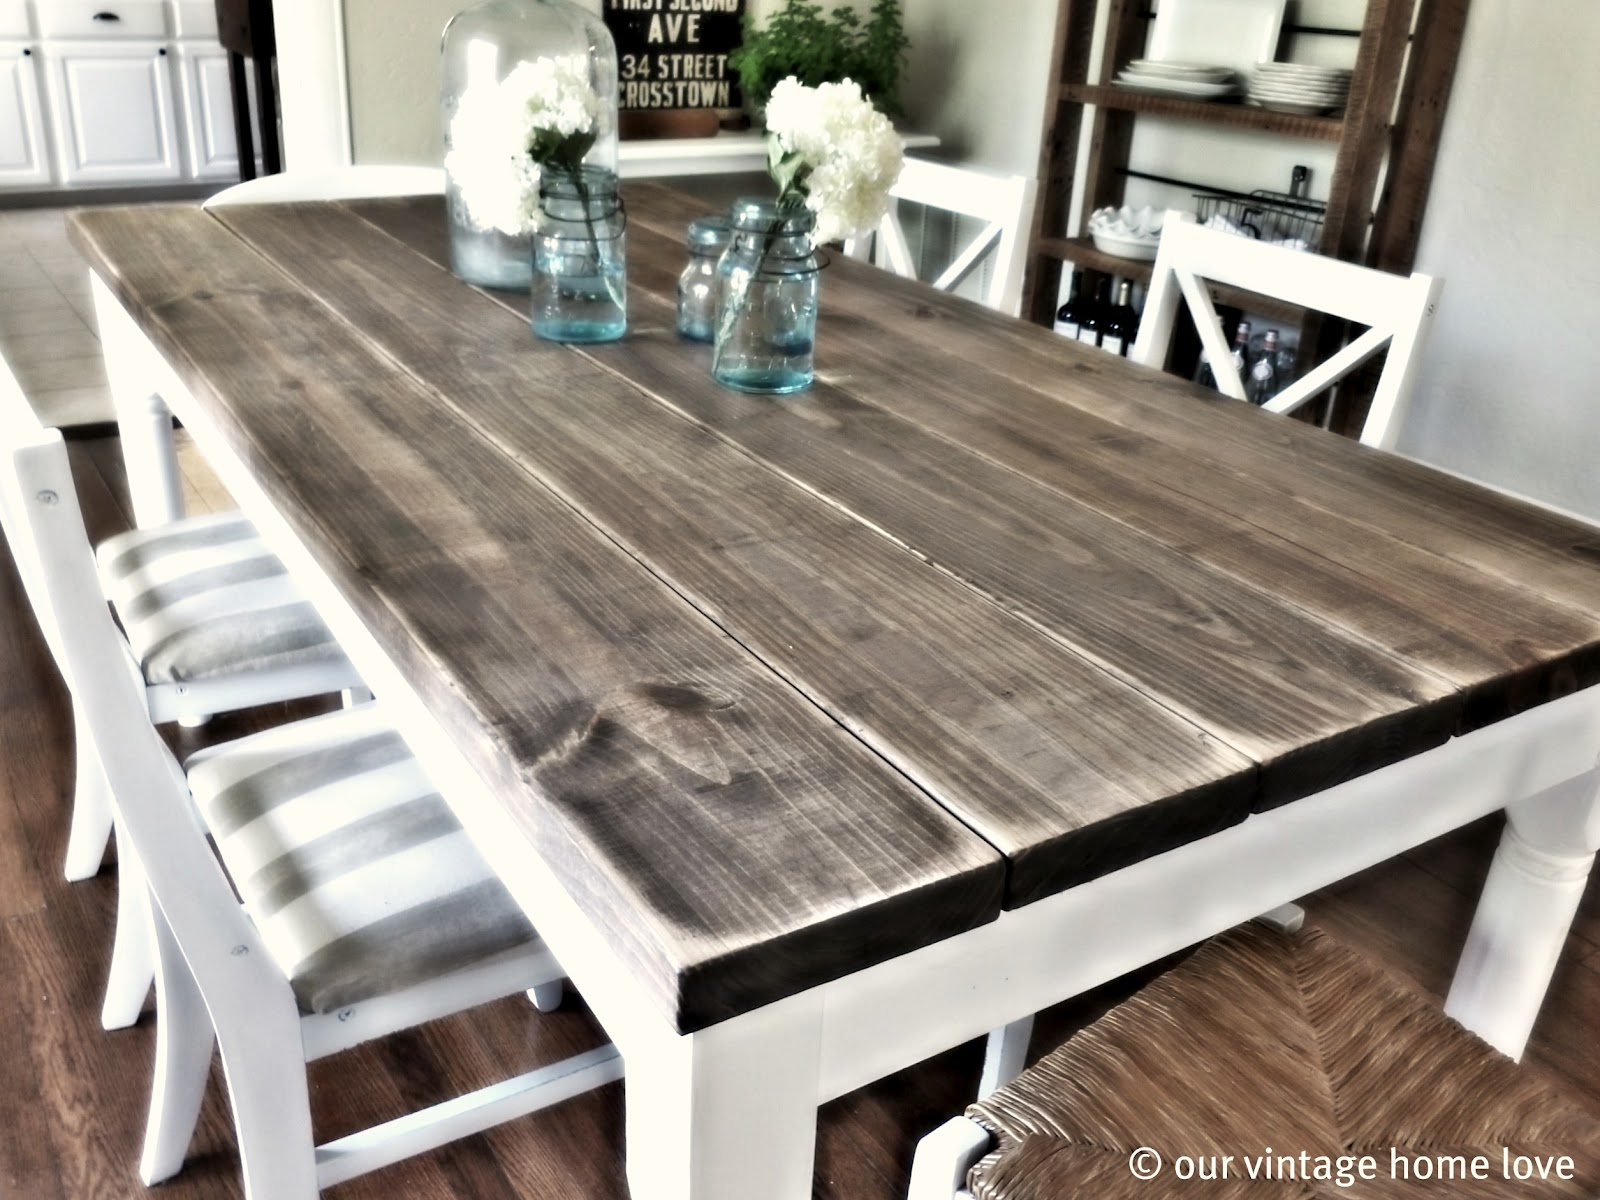 our vintage home love: Dining Room Table